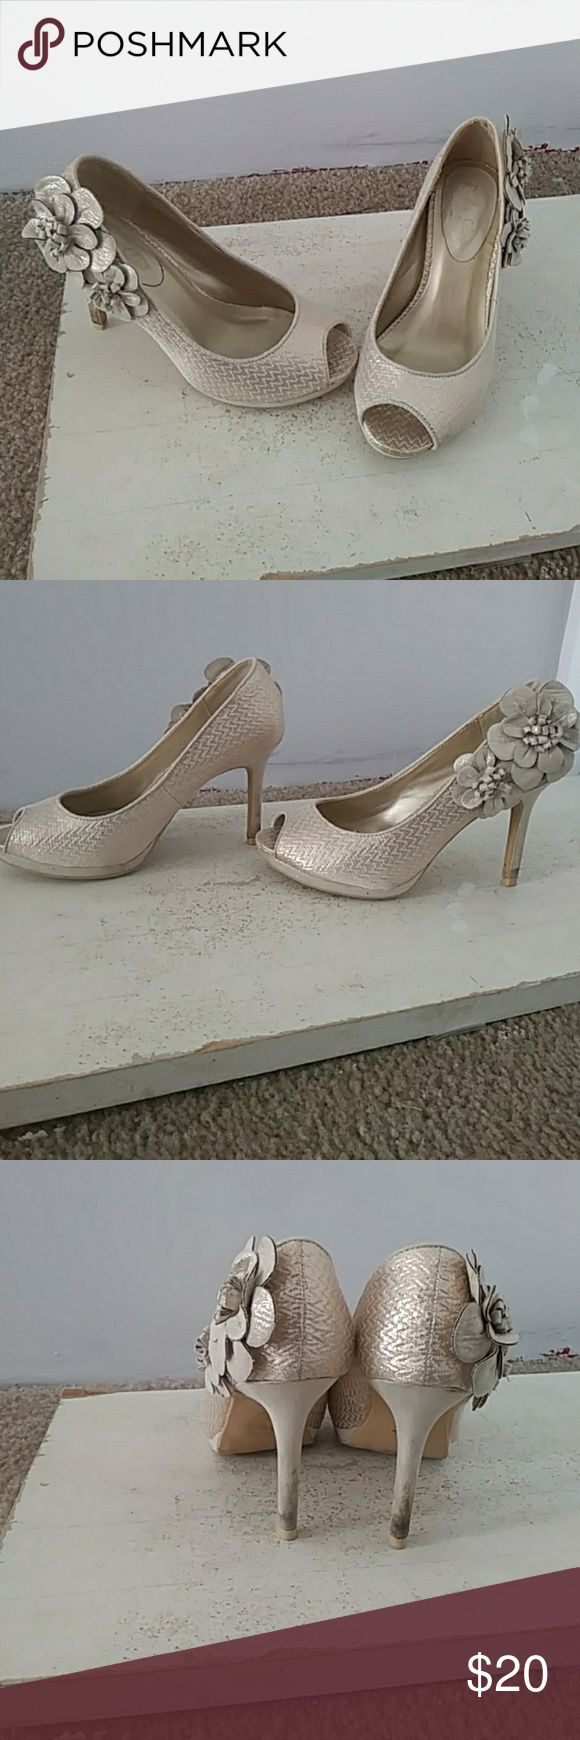 Super cute champagne-colored heels Super cute champagne-colored heels with a nice flower detail on the side is a small and a bigger flower on it size 36 from the brand Ruby shoo a bit dirty on the hill sold as is Modcloth Shoes Heels